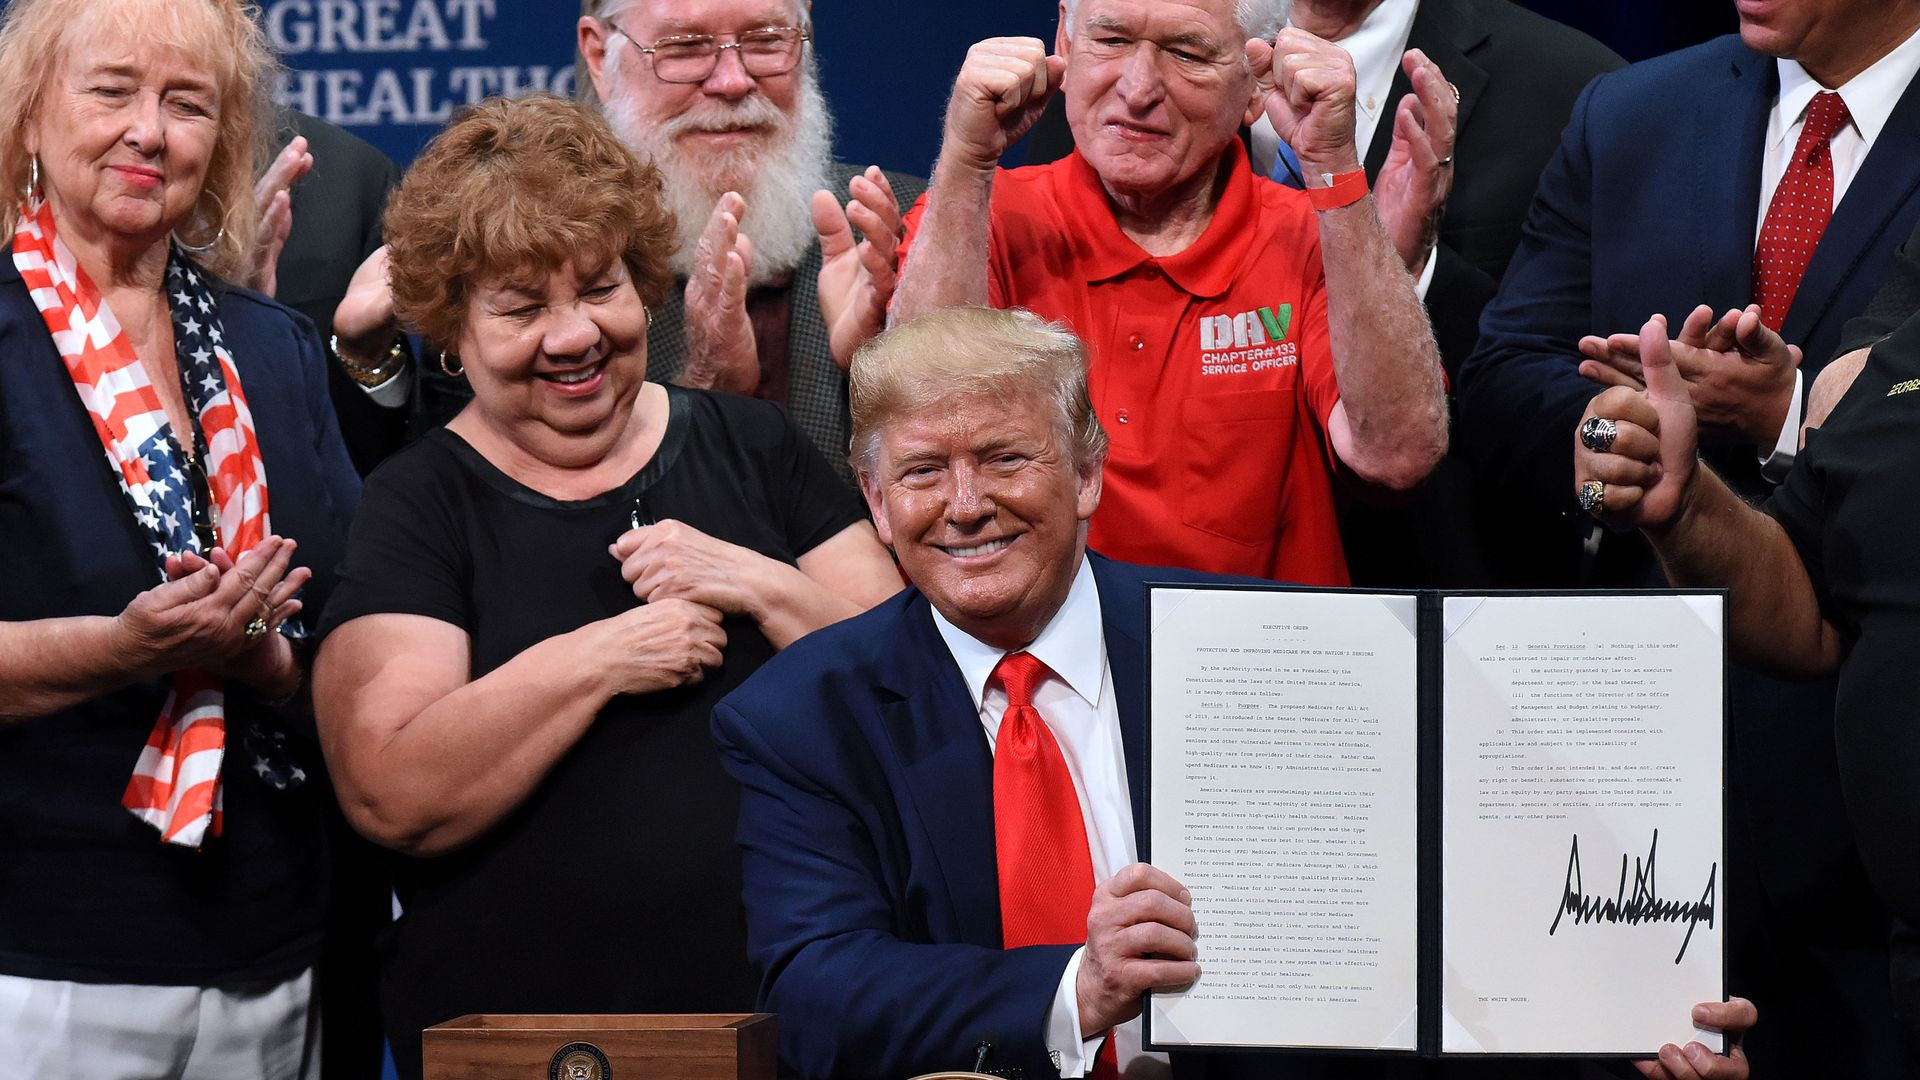 President Donald Trump signs an executive order to protect and improve Medicare